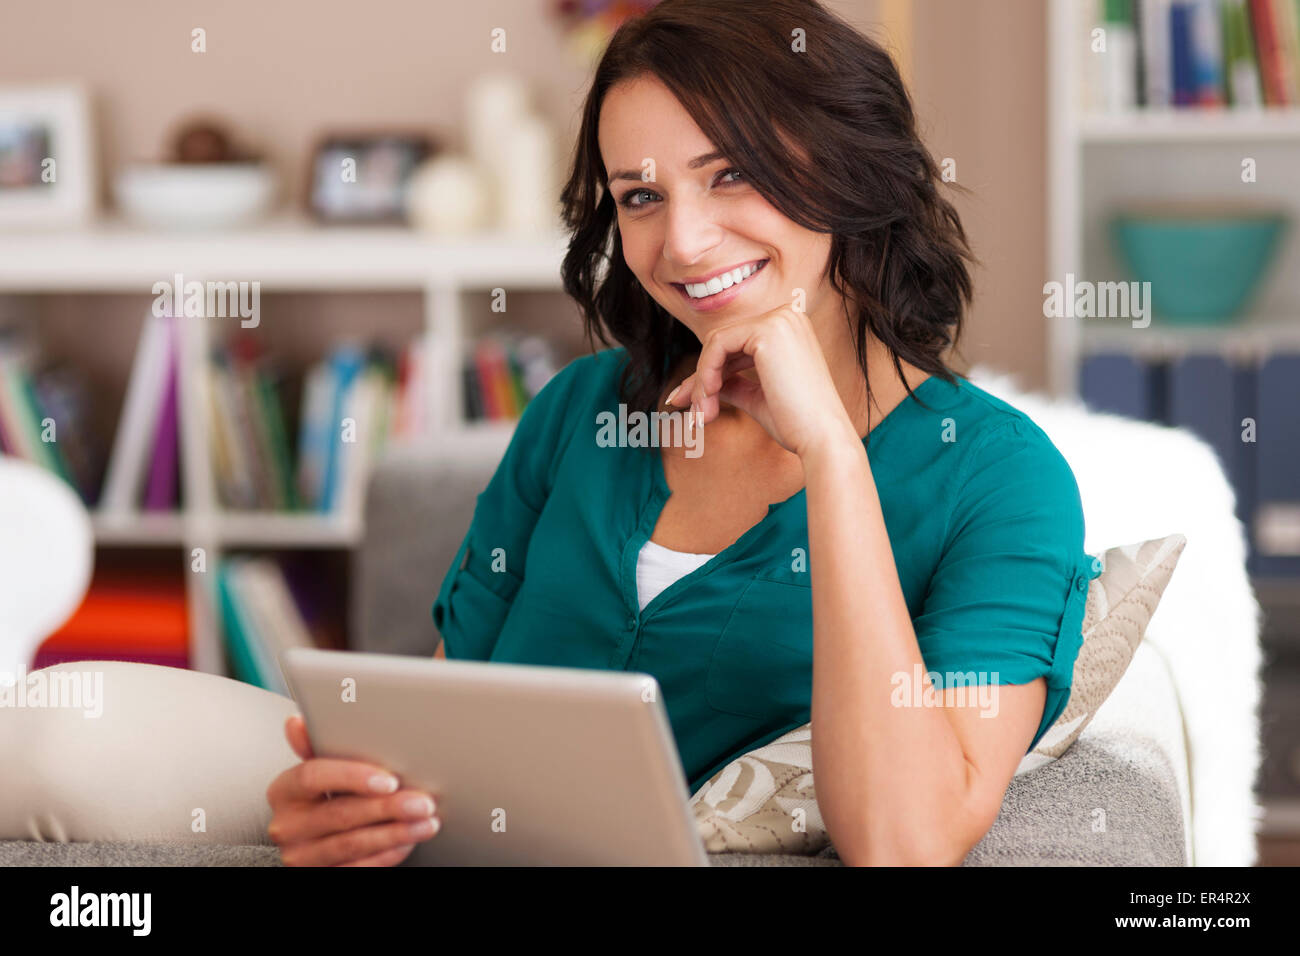 I have wireless internet in my home. Debica, Poland - Stock Image